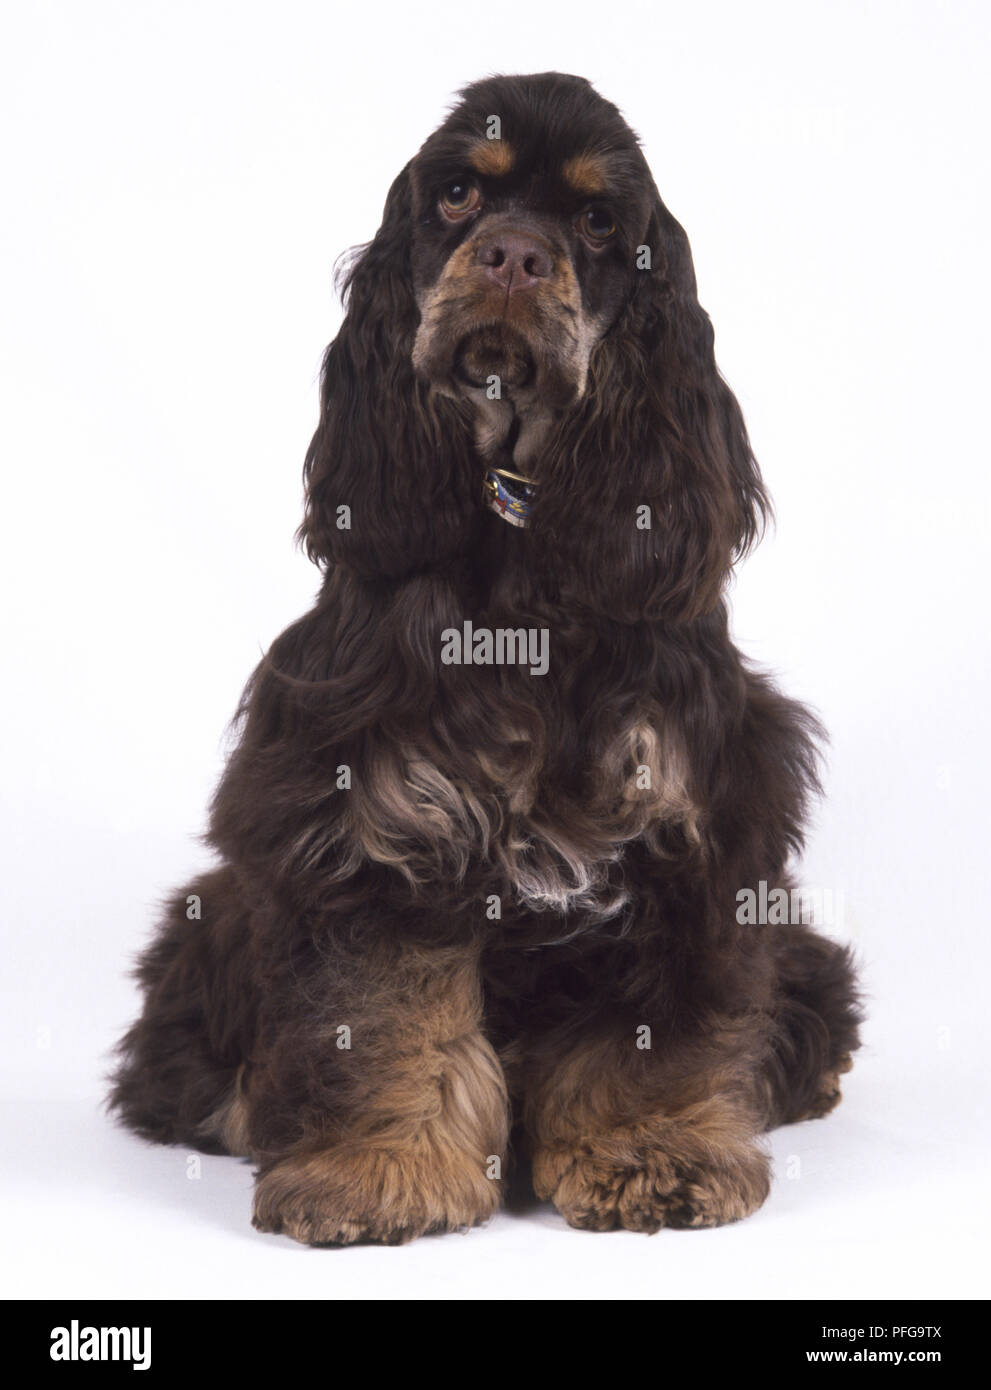 Cocker Spaniel Puppy Training Stock Photos Cocker Spaniel